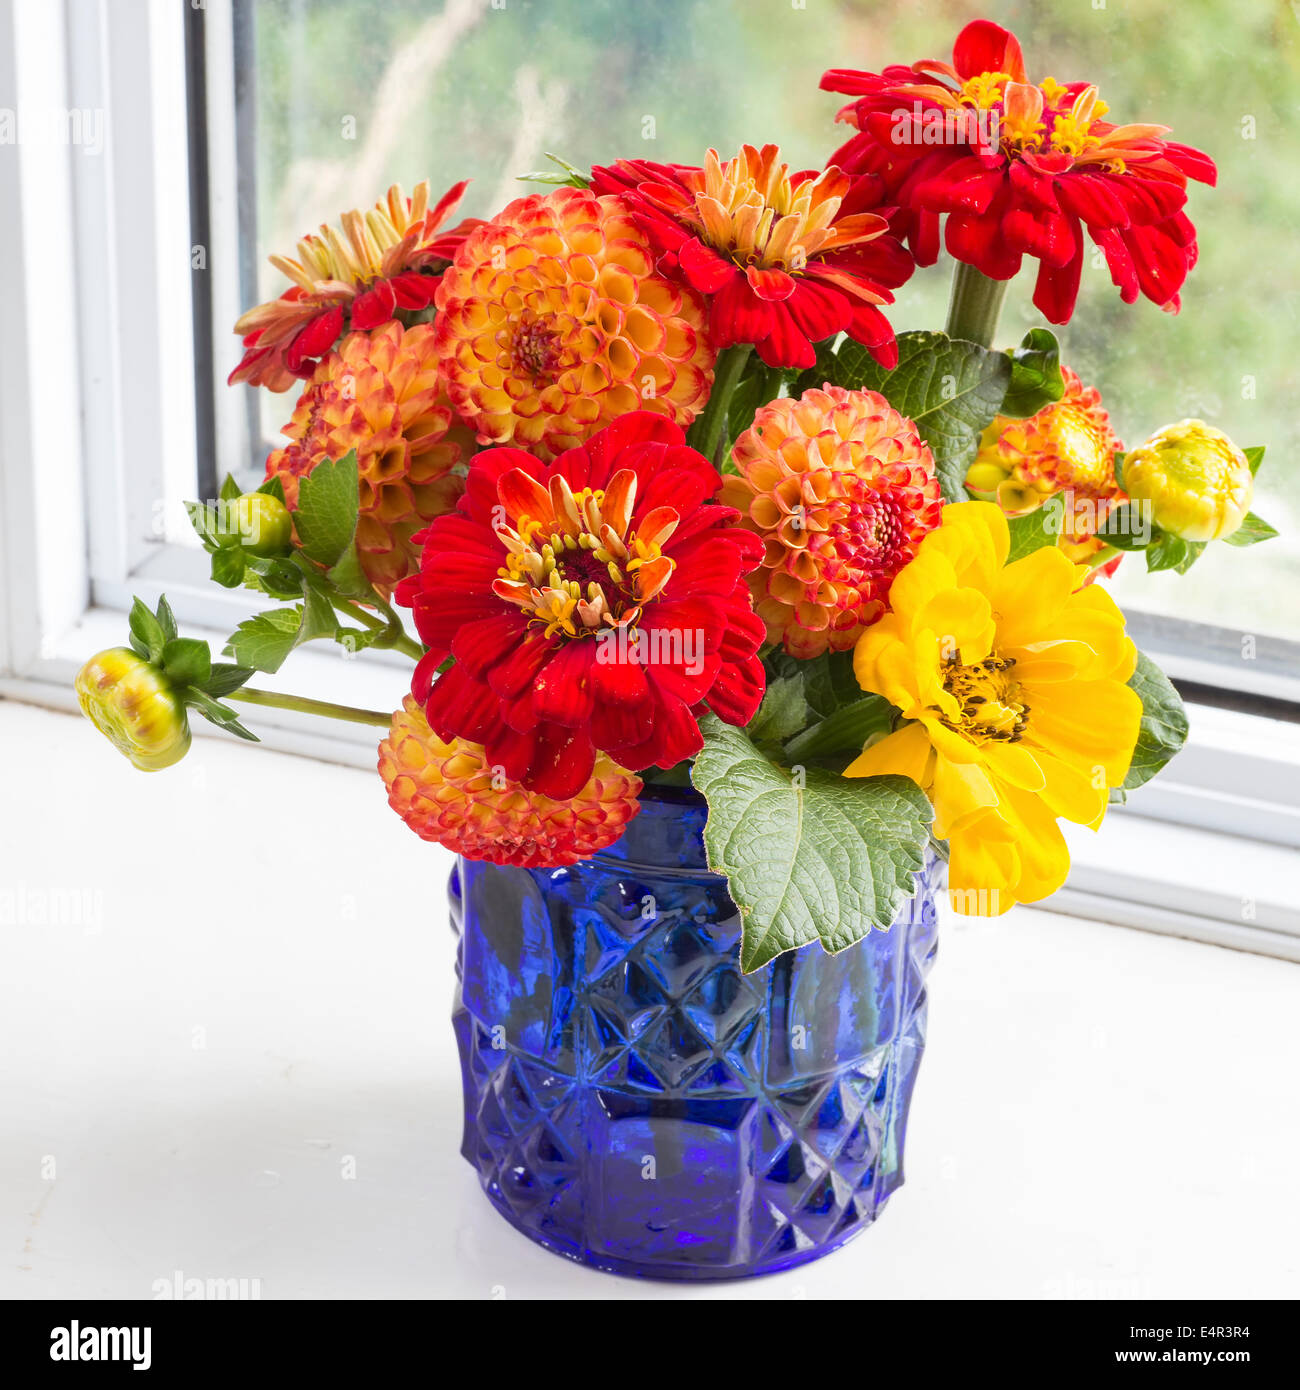 Home Style Fall Bouquet With Garden Flowers Stock Photo 71807992